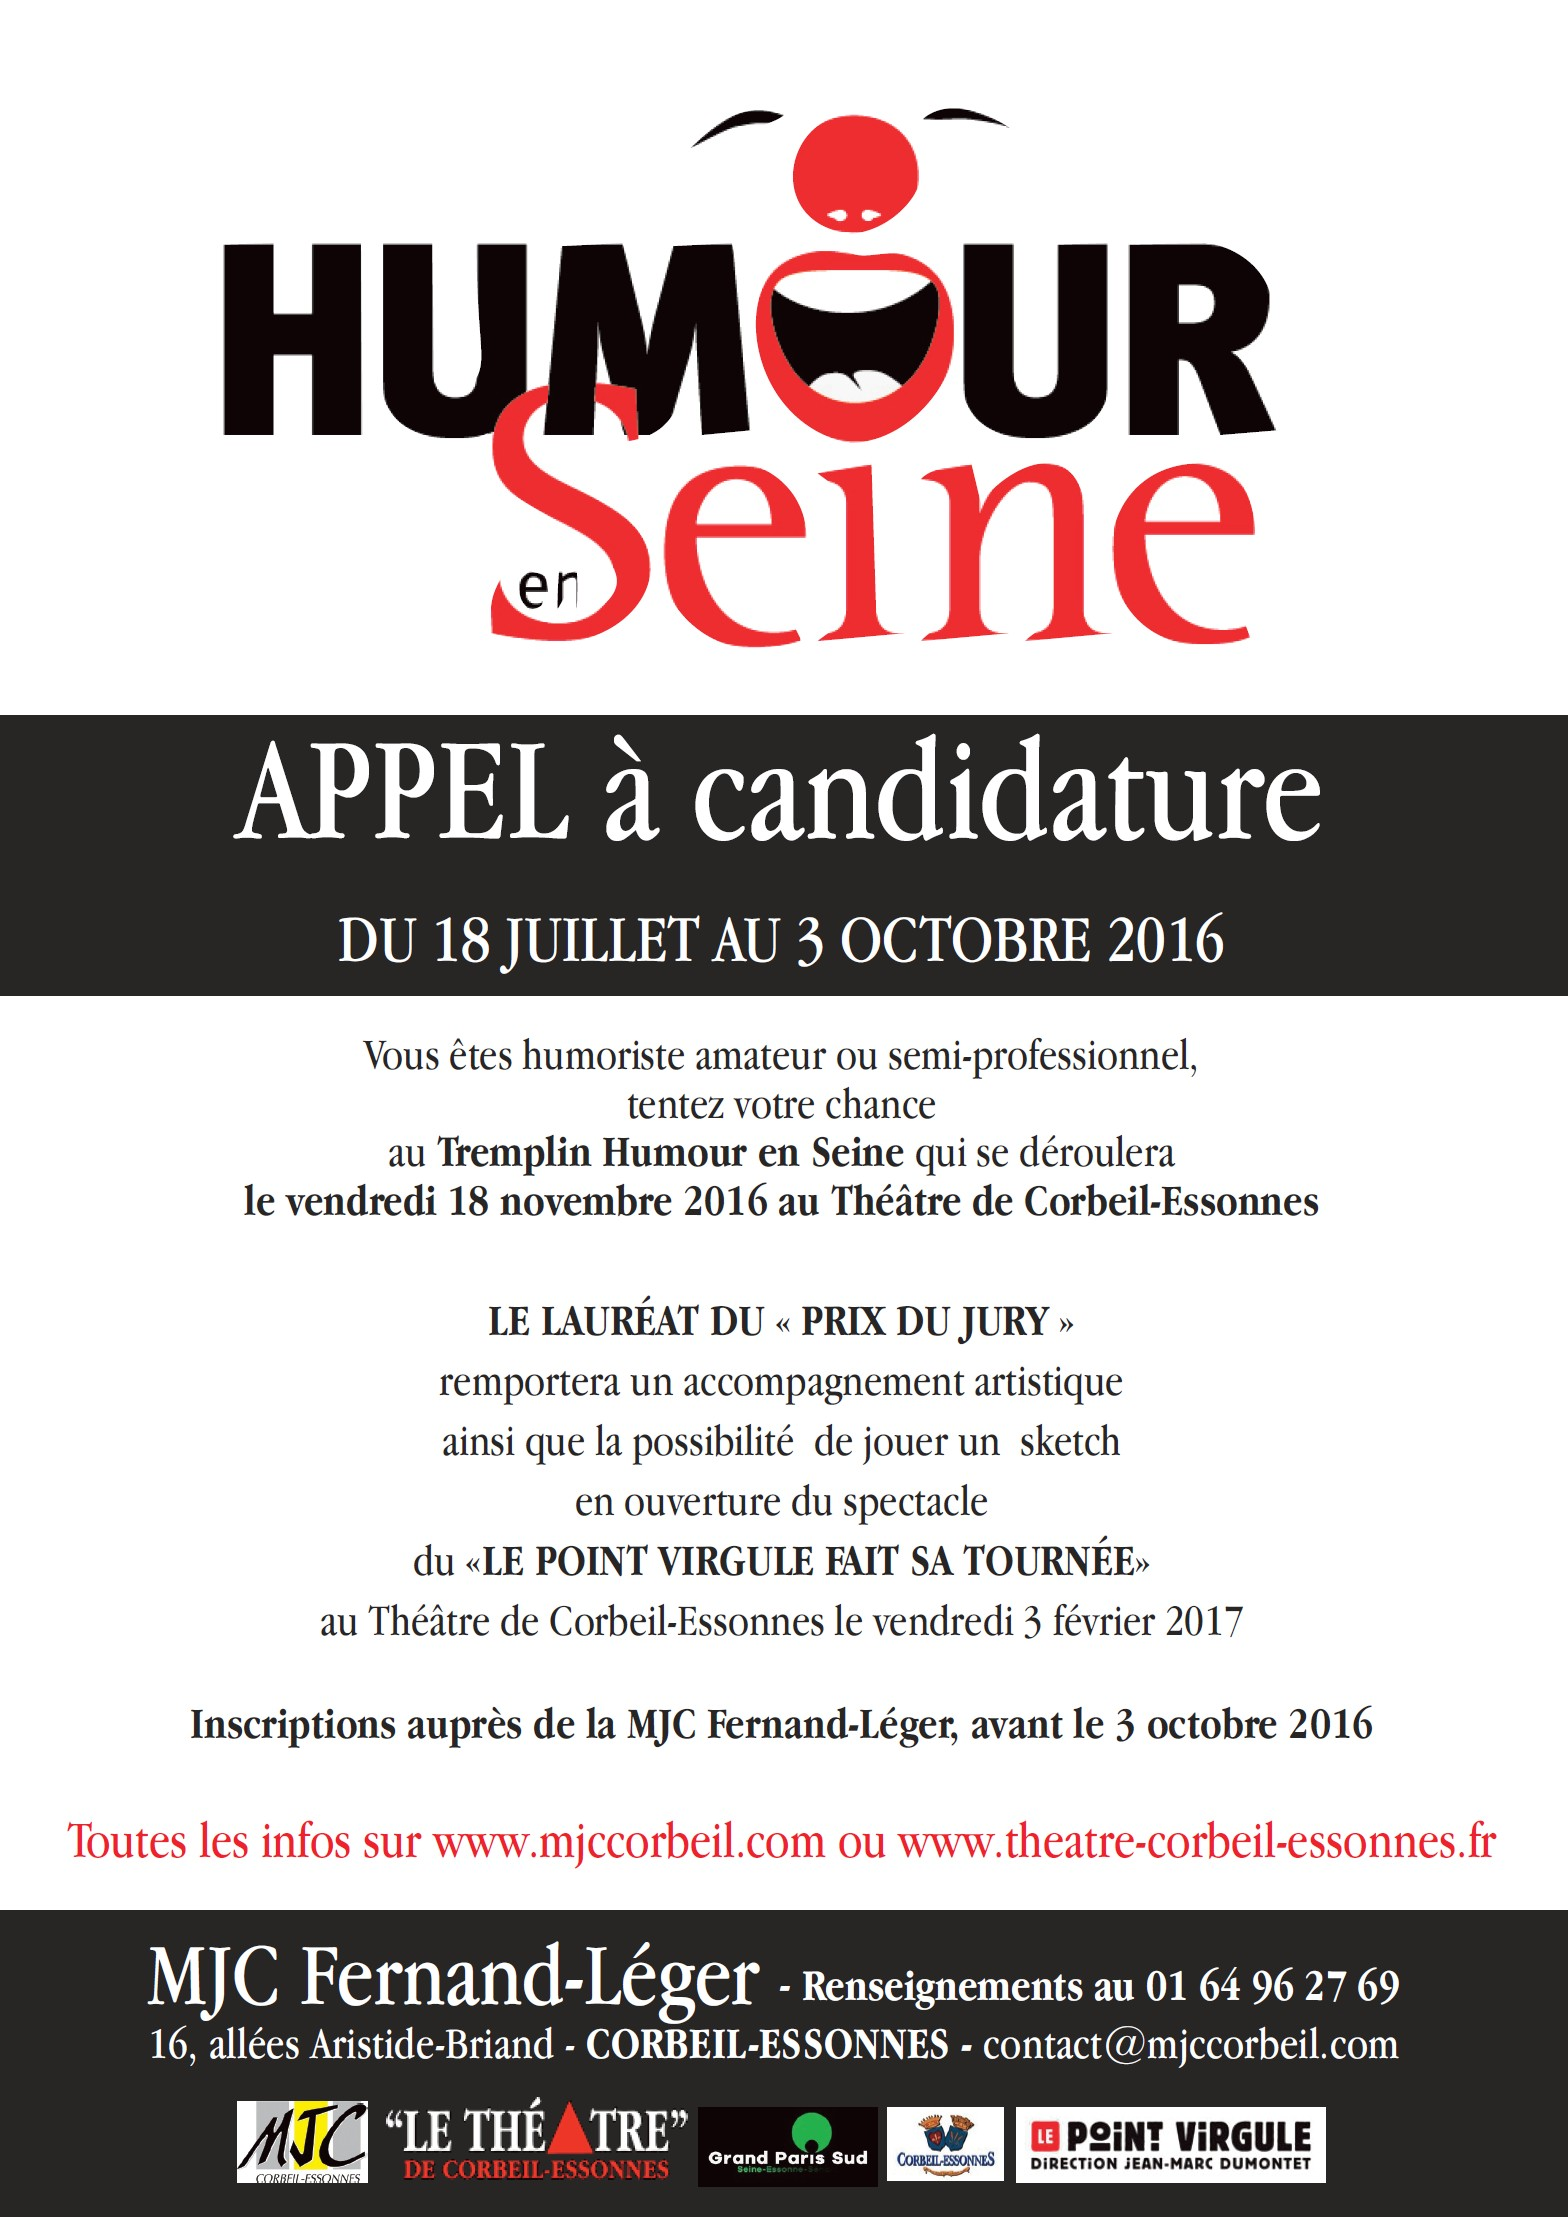 appel a candidature 2016